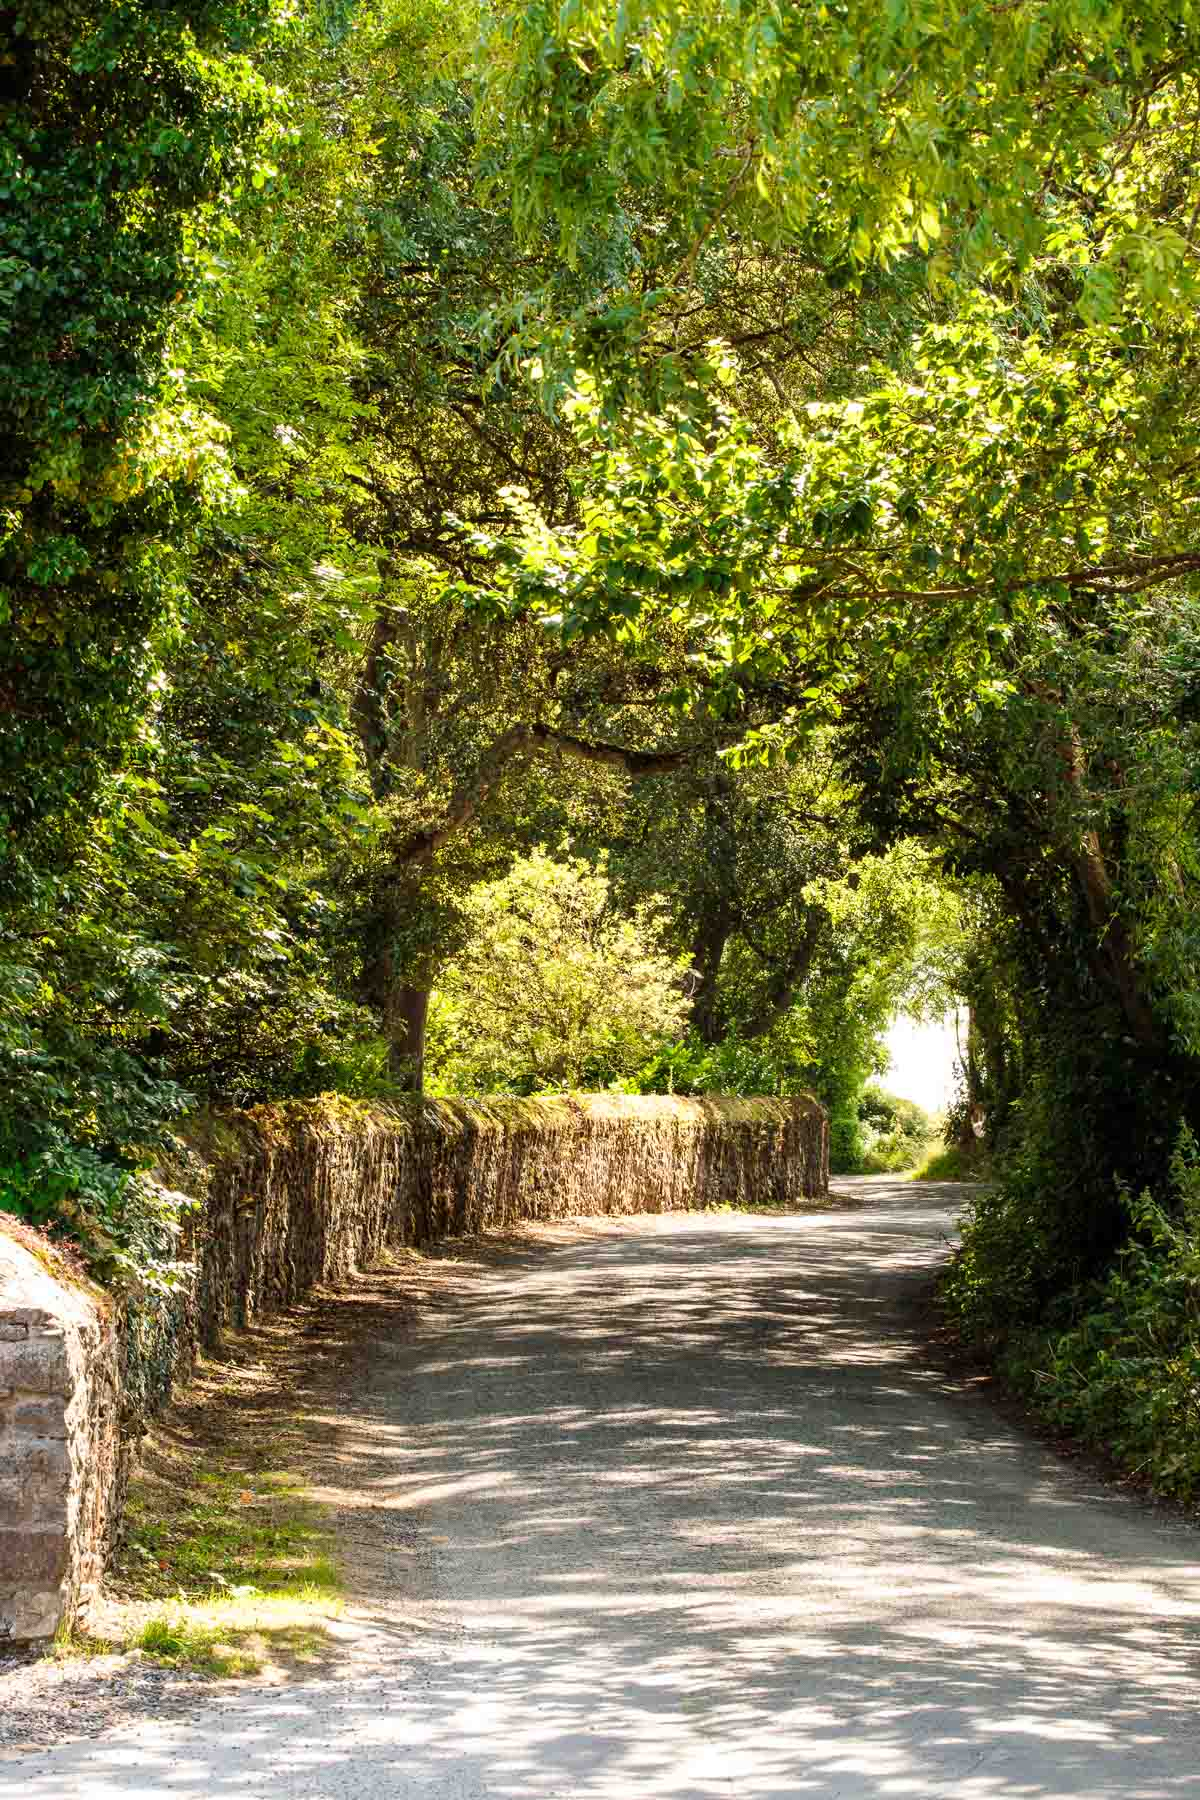 Photo of the country road that leads to Ballymaloe Cookery School.